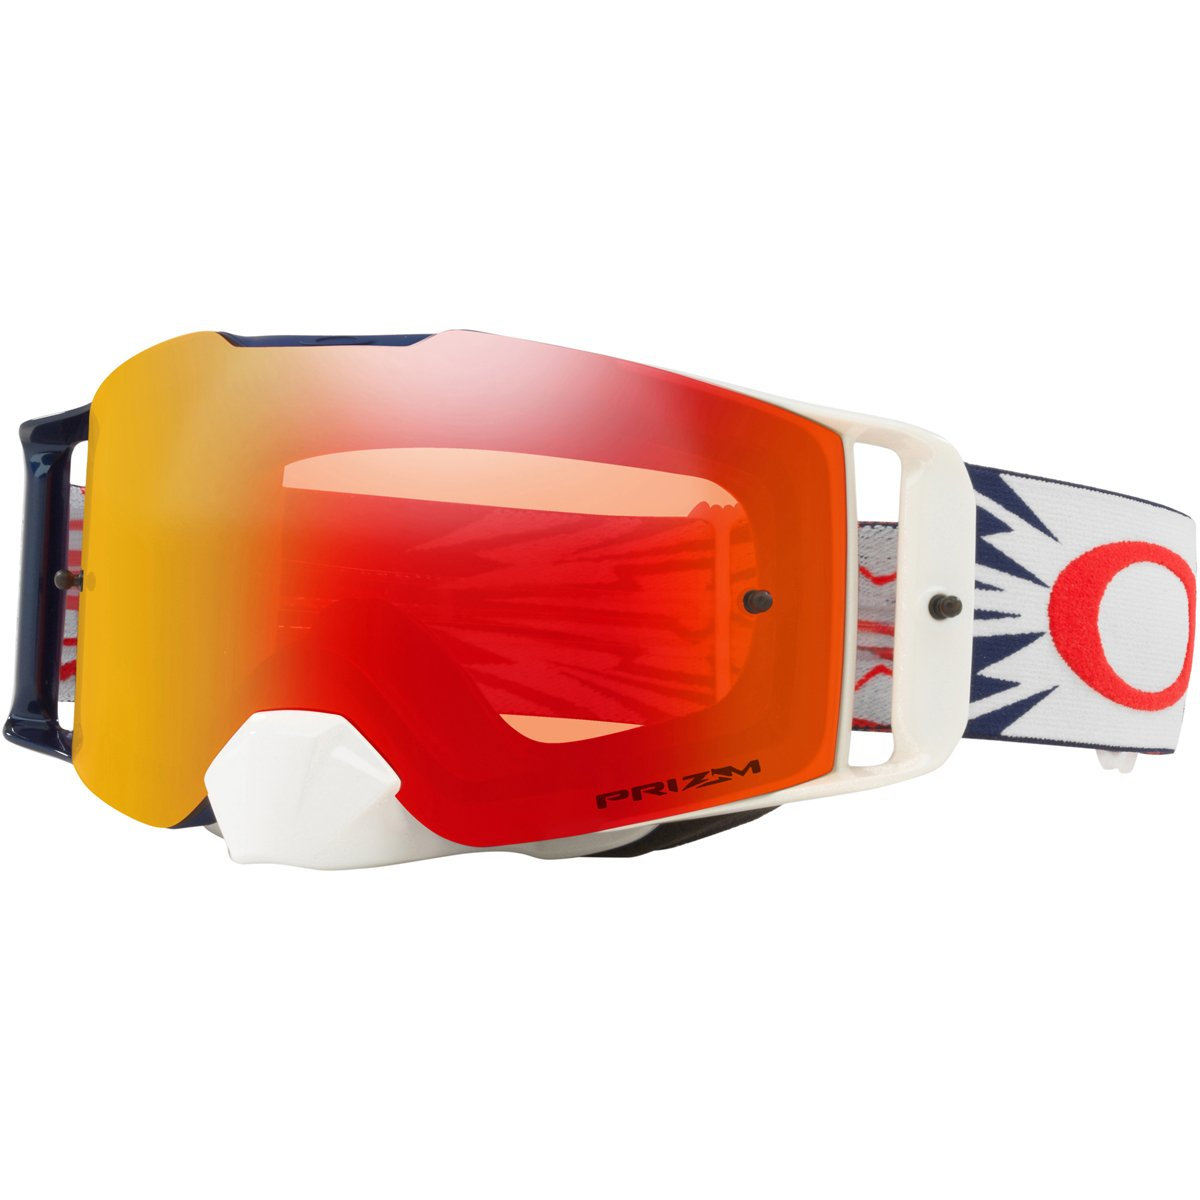 Oakley FL MX HighVoltage RedNavy with PrzmMXTorch unisex-adult Goggles (Yellow, Large), 1 Pack